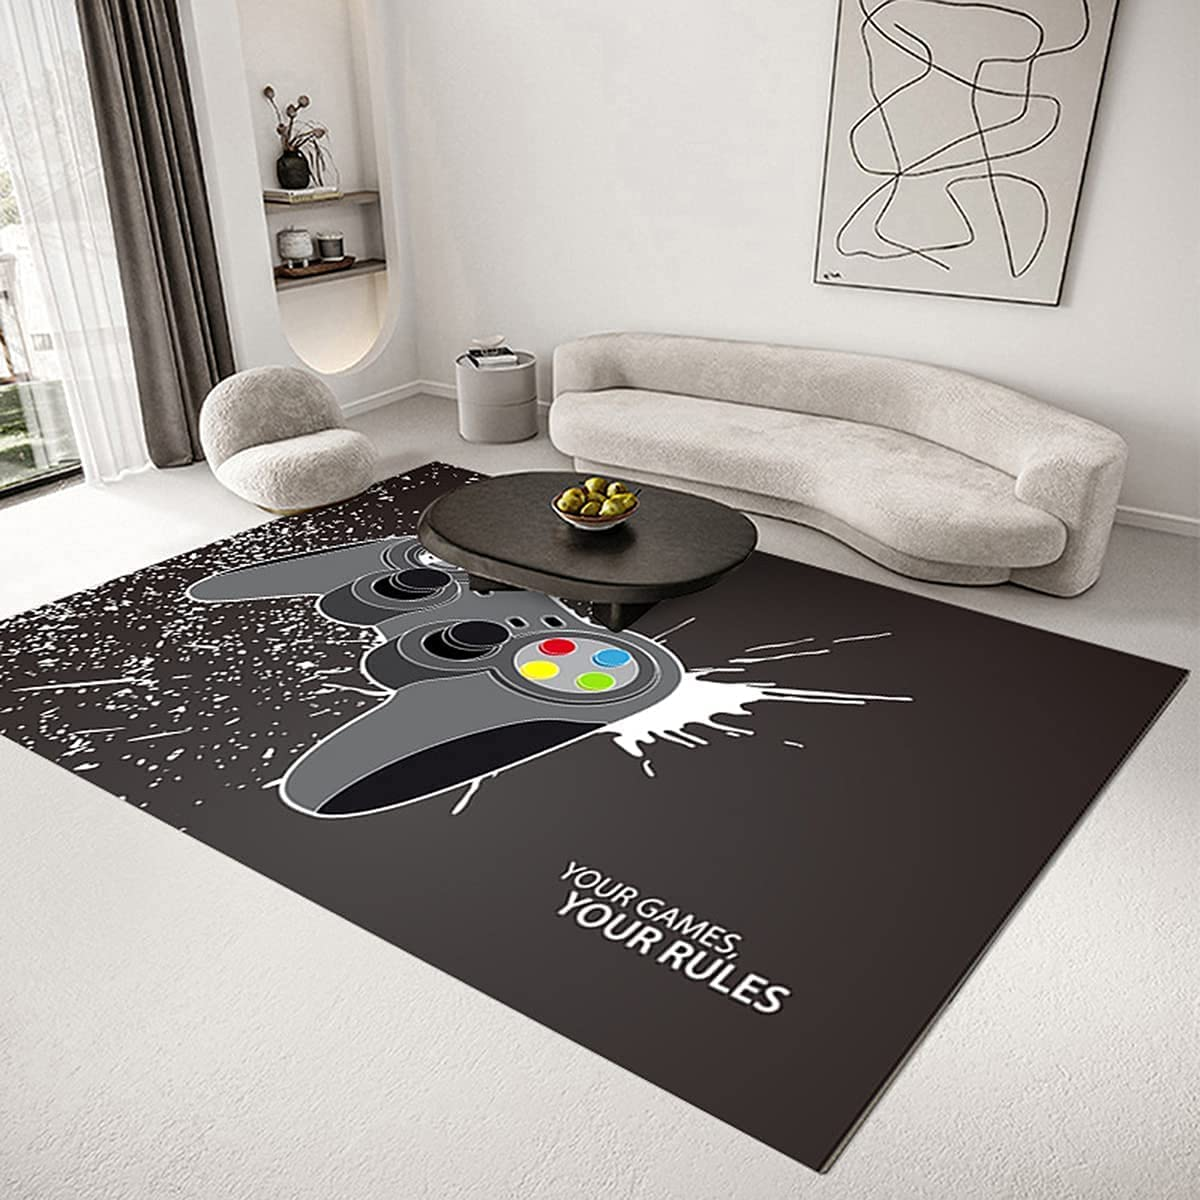 Boys Teen Bedroom Rug Video Game Our shop most popular Ma Ranking TOP7 Gaming Room Rugs Living Area